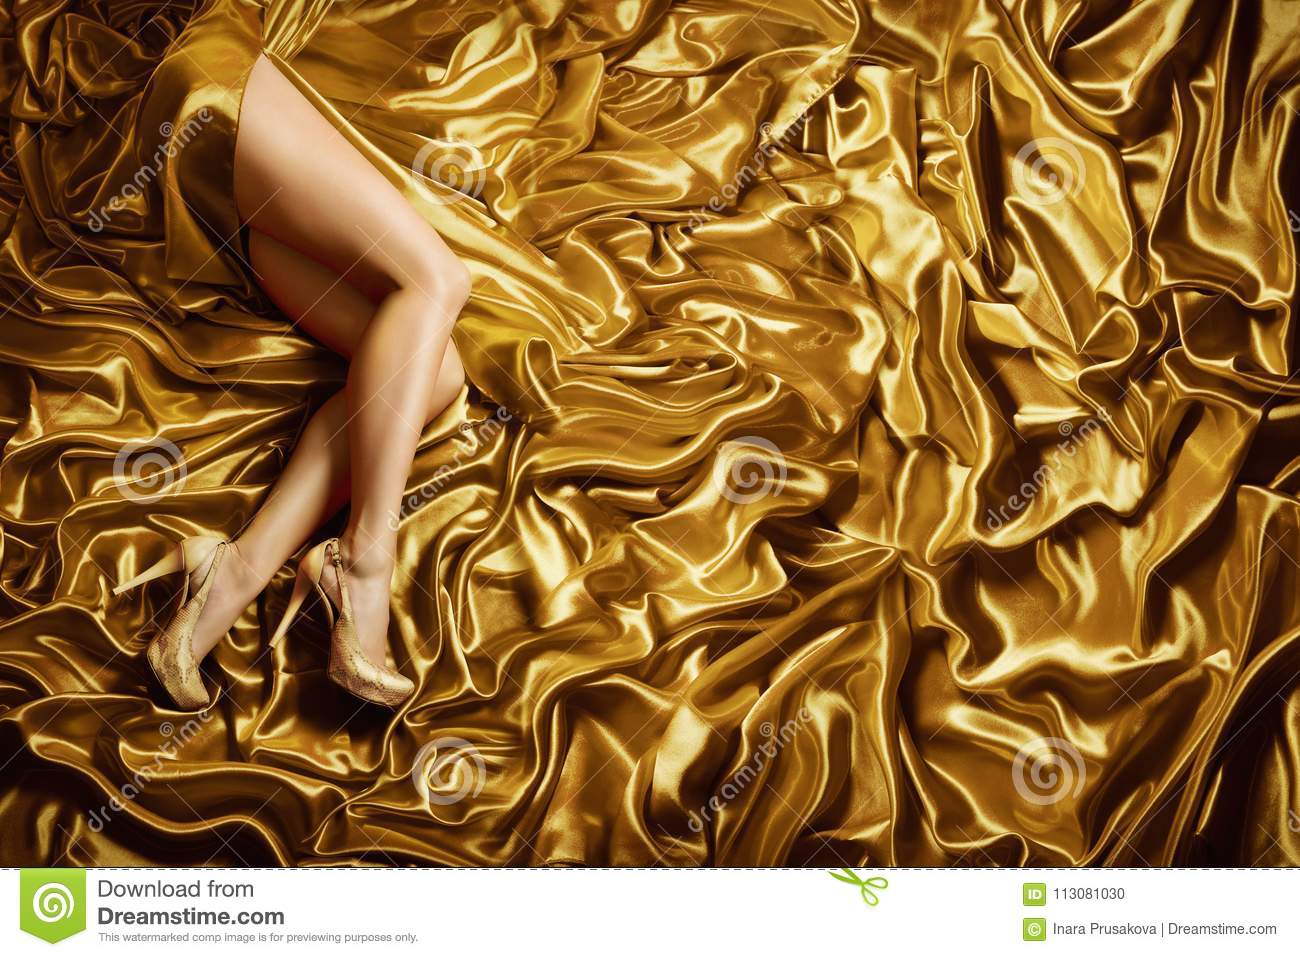 Woman Legs on Gold Silk Fabric Background, Fashion Golden Shoes